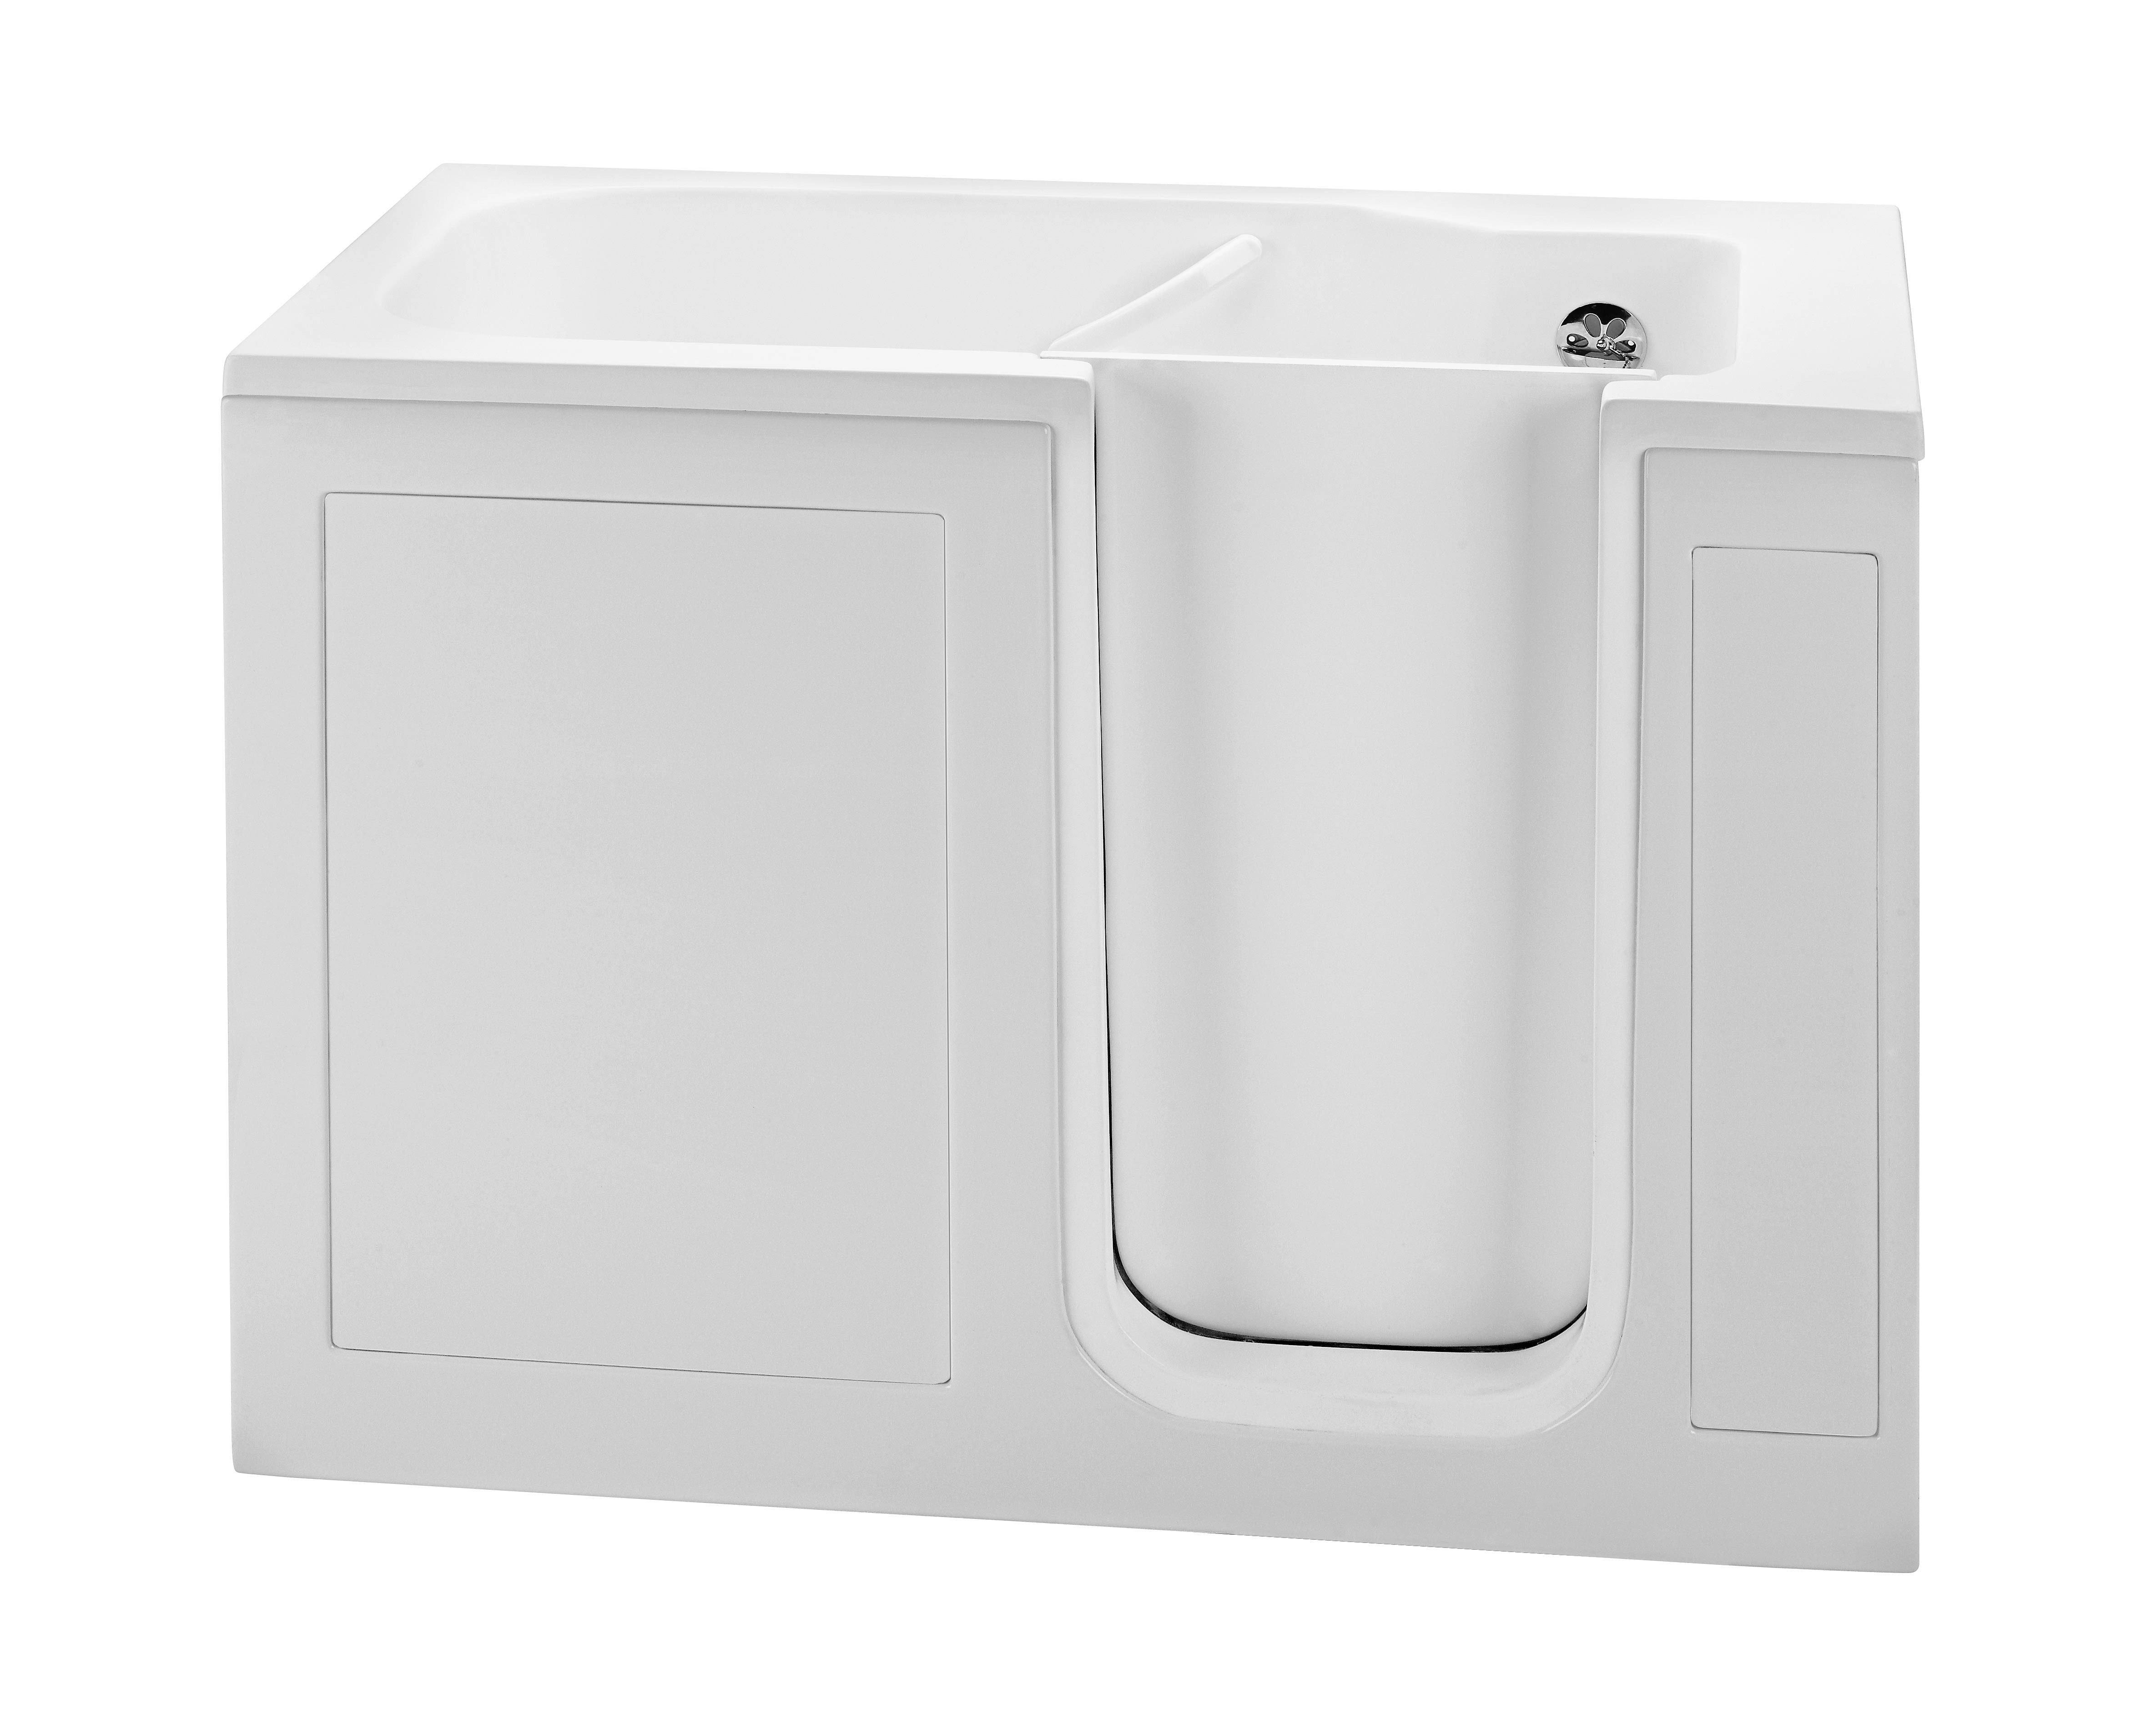 Reliance RWI5030RNVW 51.5 Inch Walk In Soaking Bath With Radiance No Valves